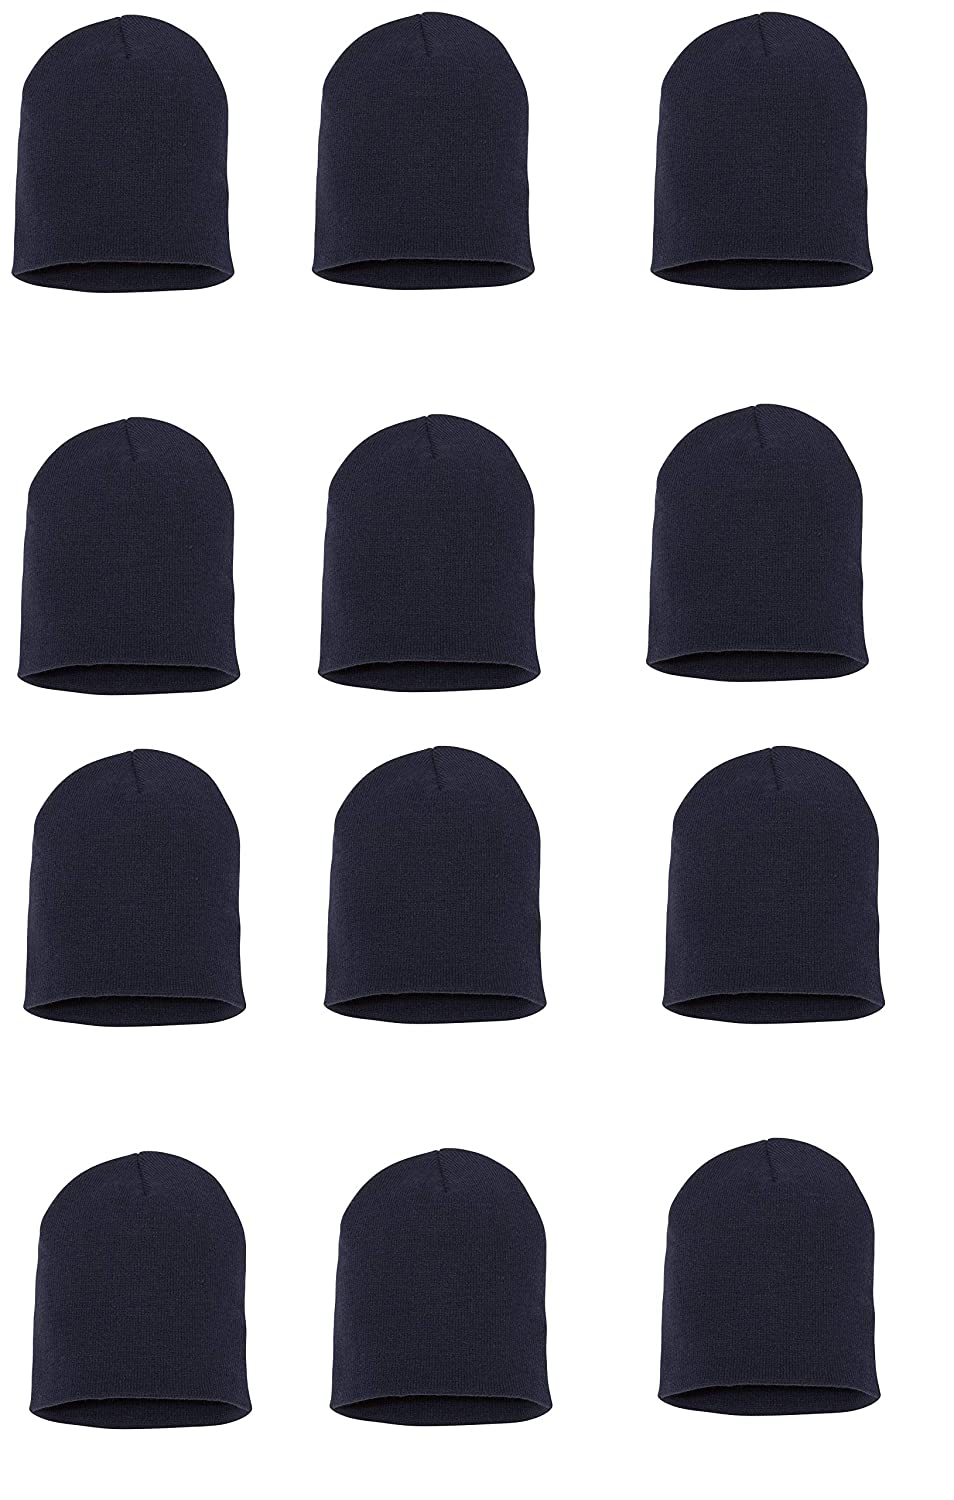 Wholesale 12 PCS Unisex Knit Short Plain Ribbed Beanie Ski Cap Skull Hat  Warm Solid Winter New Blank (Navy) at Amazon Women s Clothing store  696efcec7ab